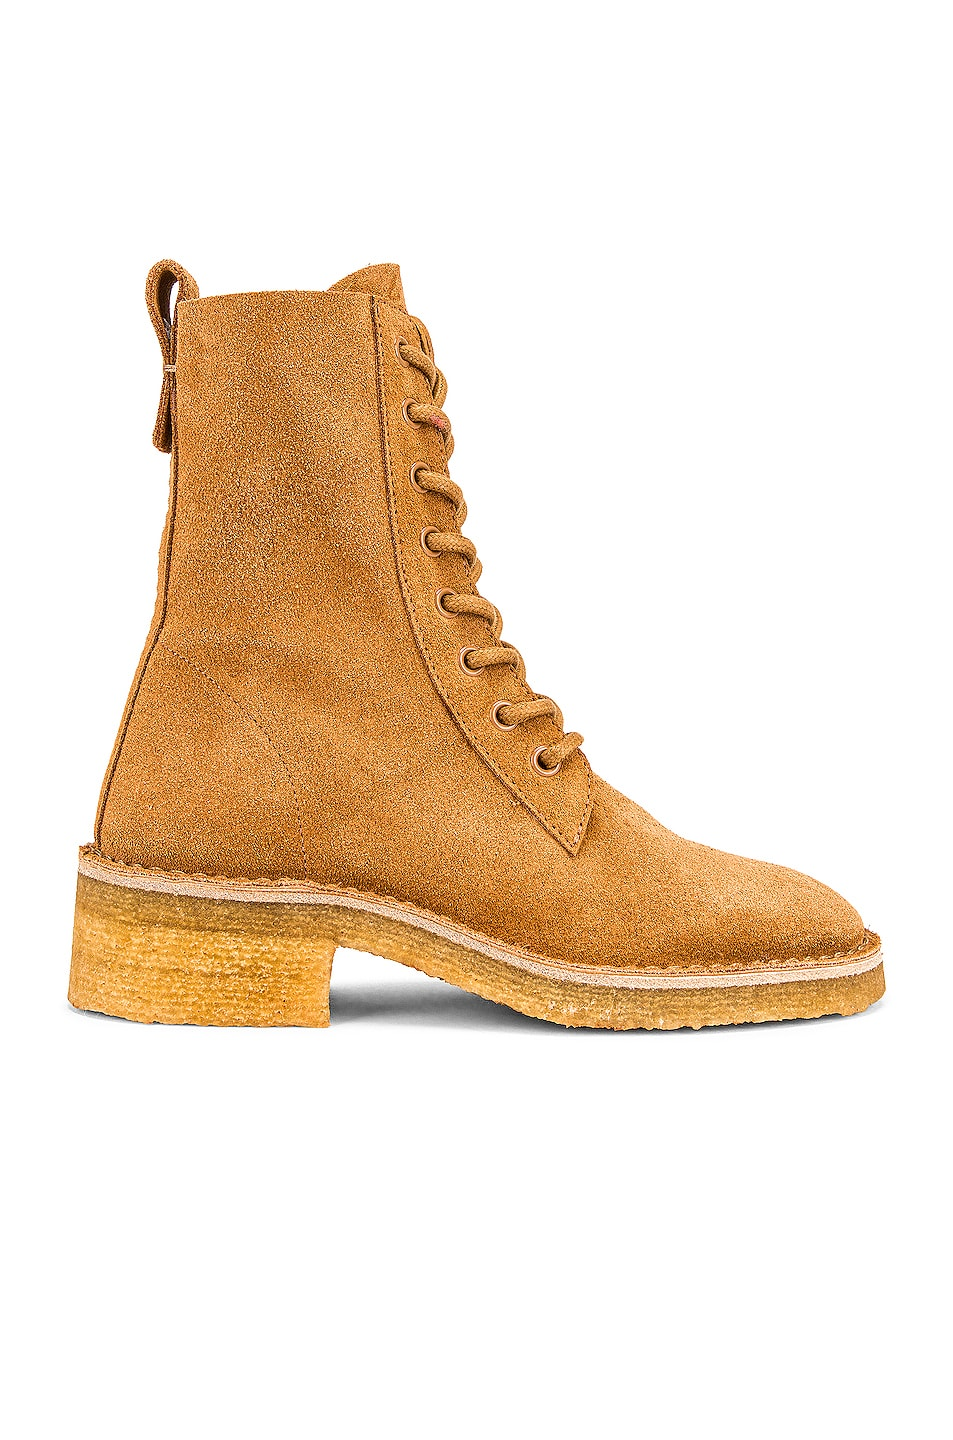 Image 1 of Chloe Edith Ankle Boots in Smooth Tan